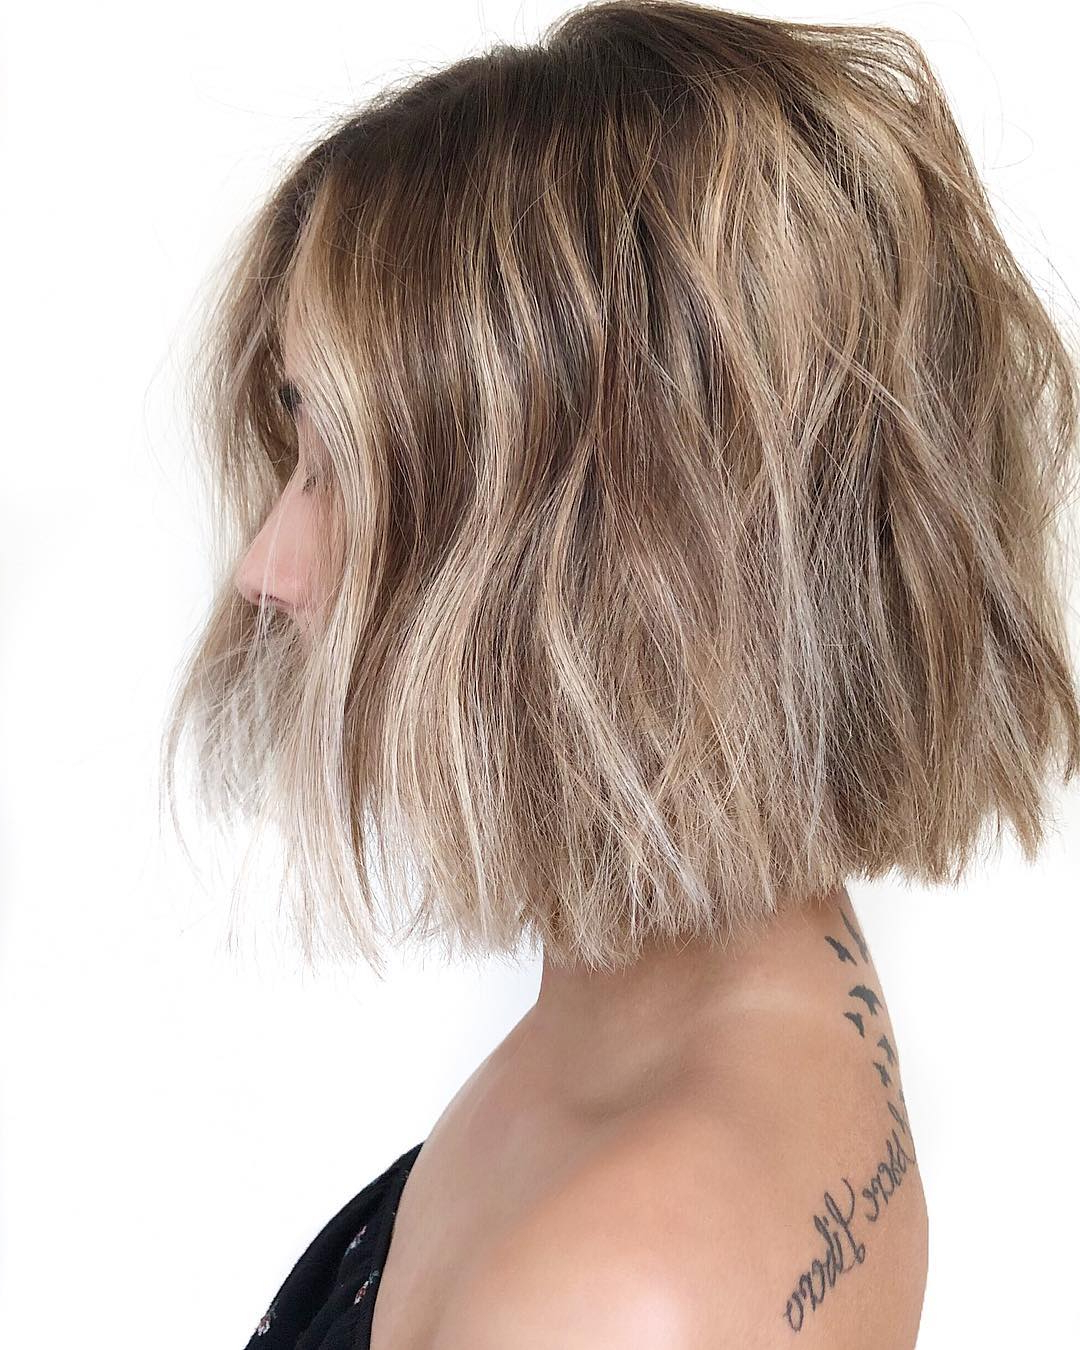 10 Trendy Messy Bob Hairstyles And Haircuts, 2019 Female Short Hair For Latest Messy Medium Haircuts (Gallery 12 of 20)